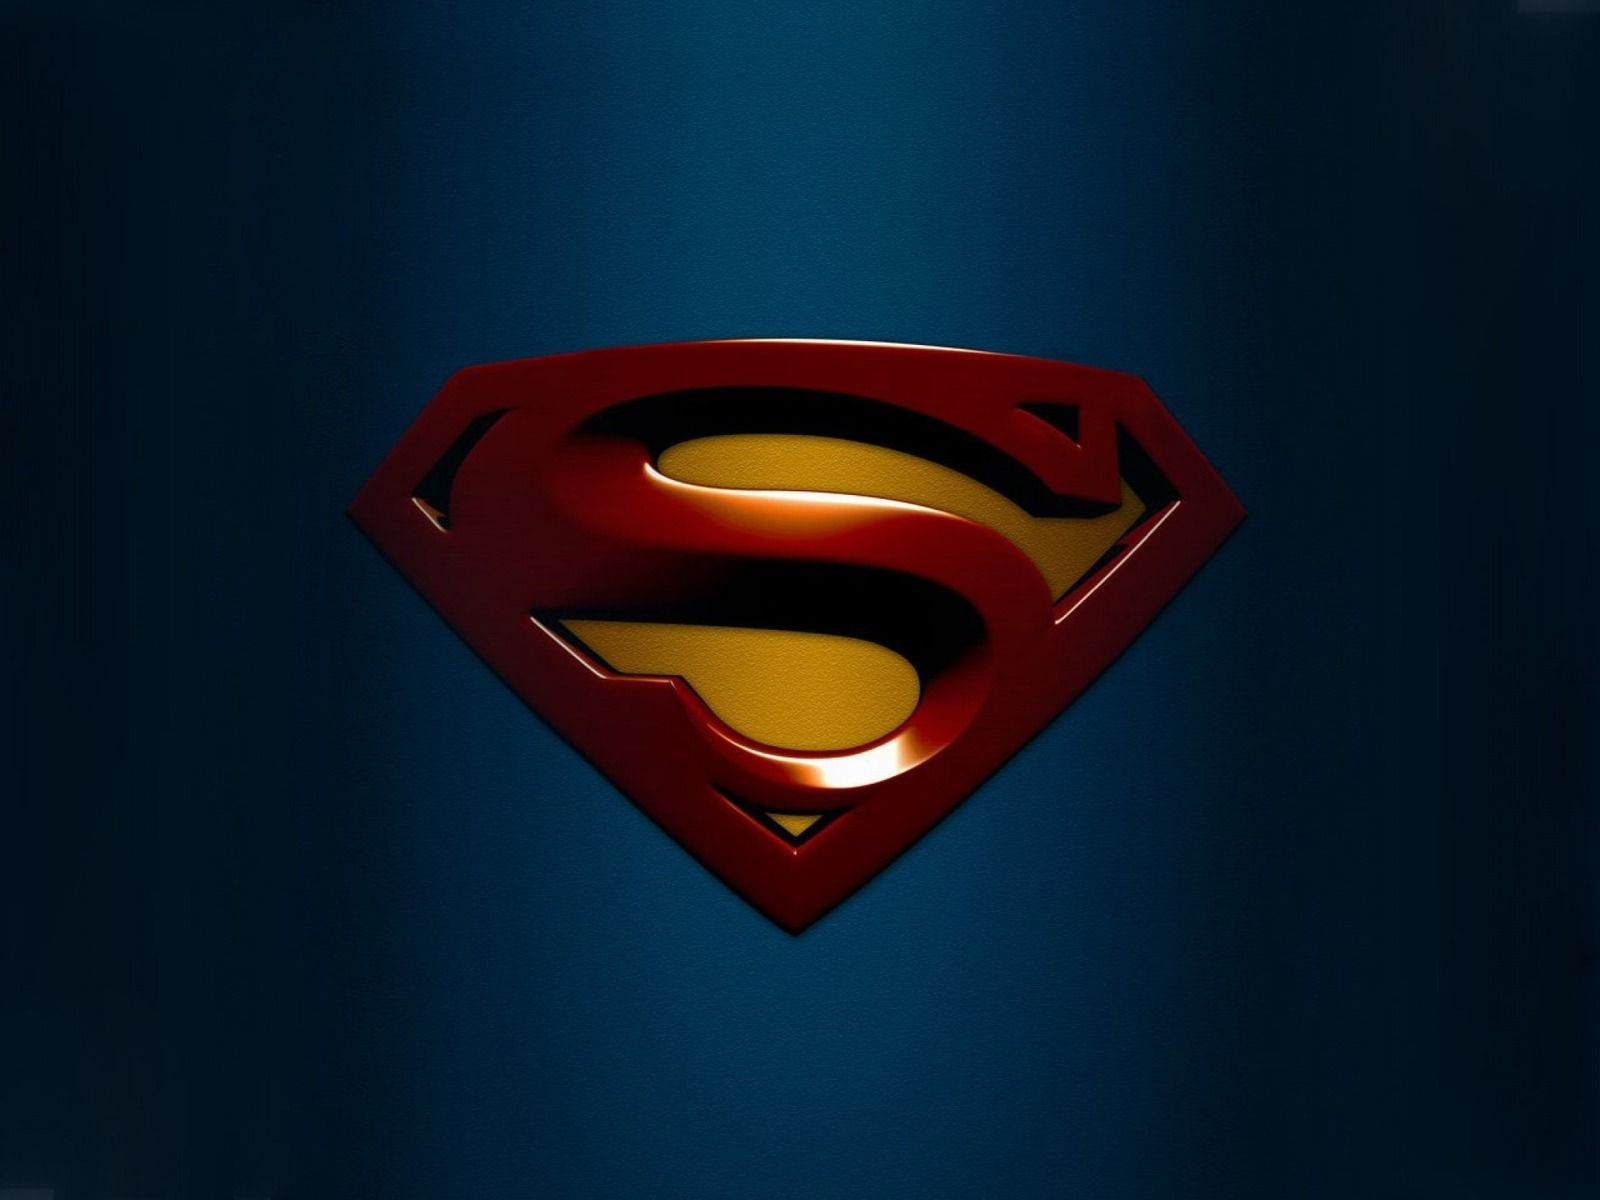 Superman Logo Wallpapers High Quality - Wickedsa com